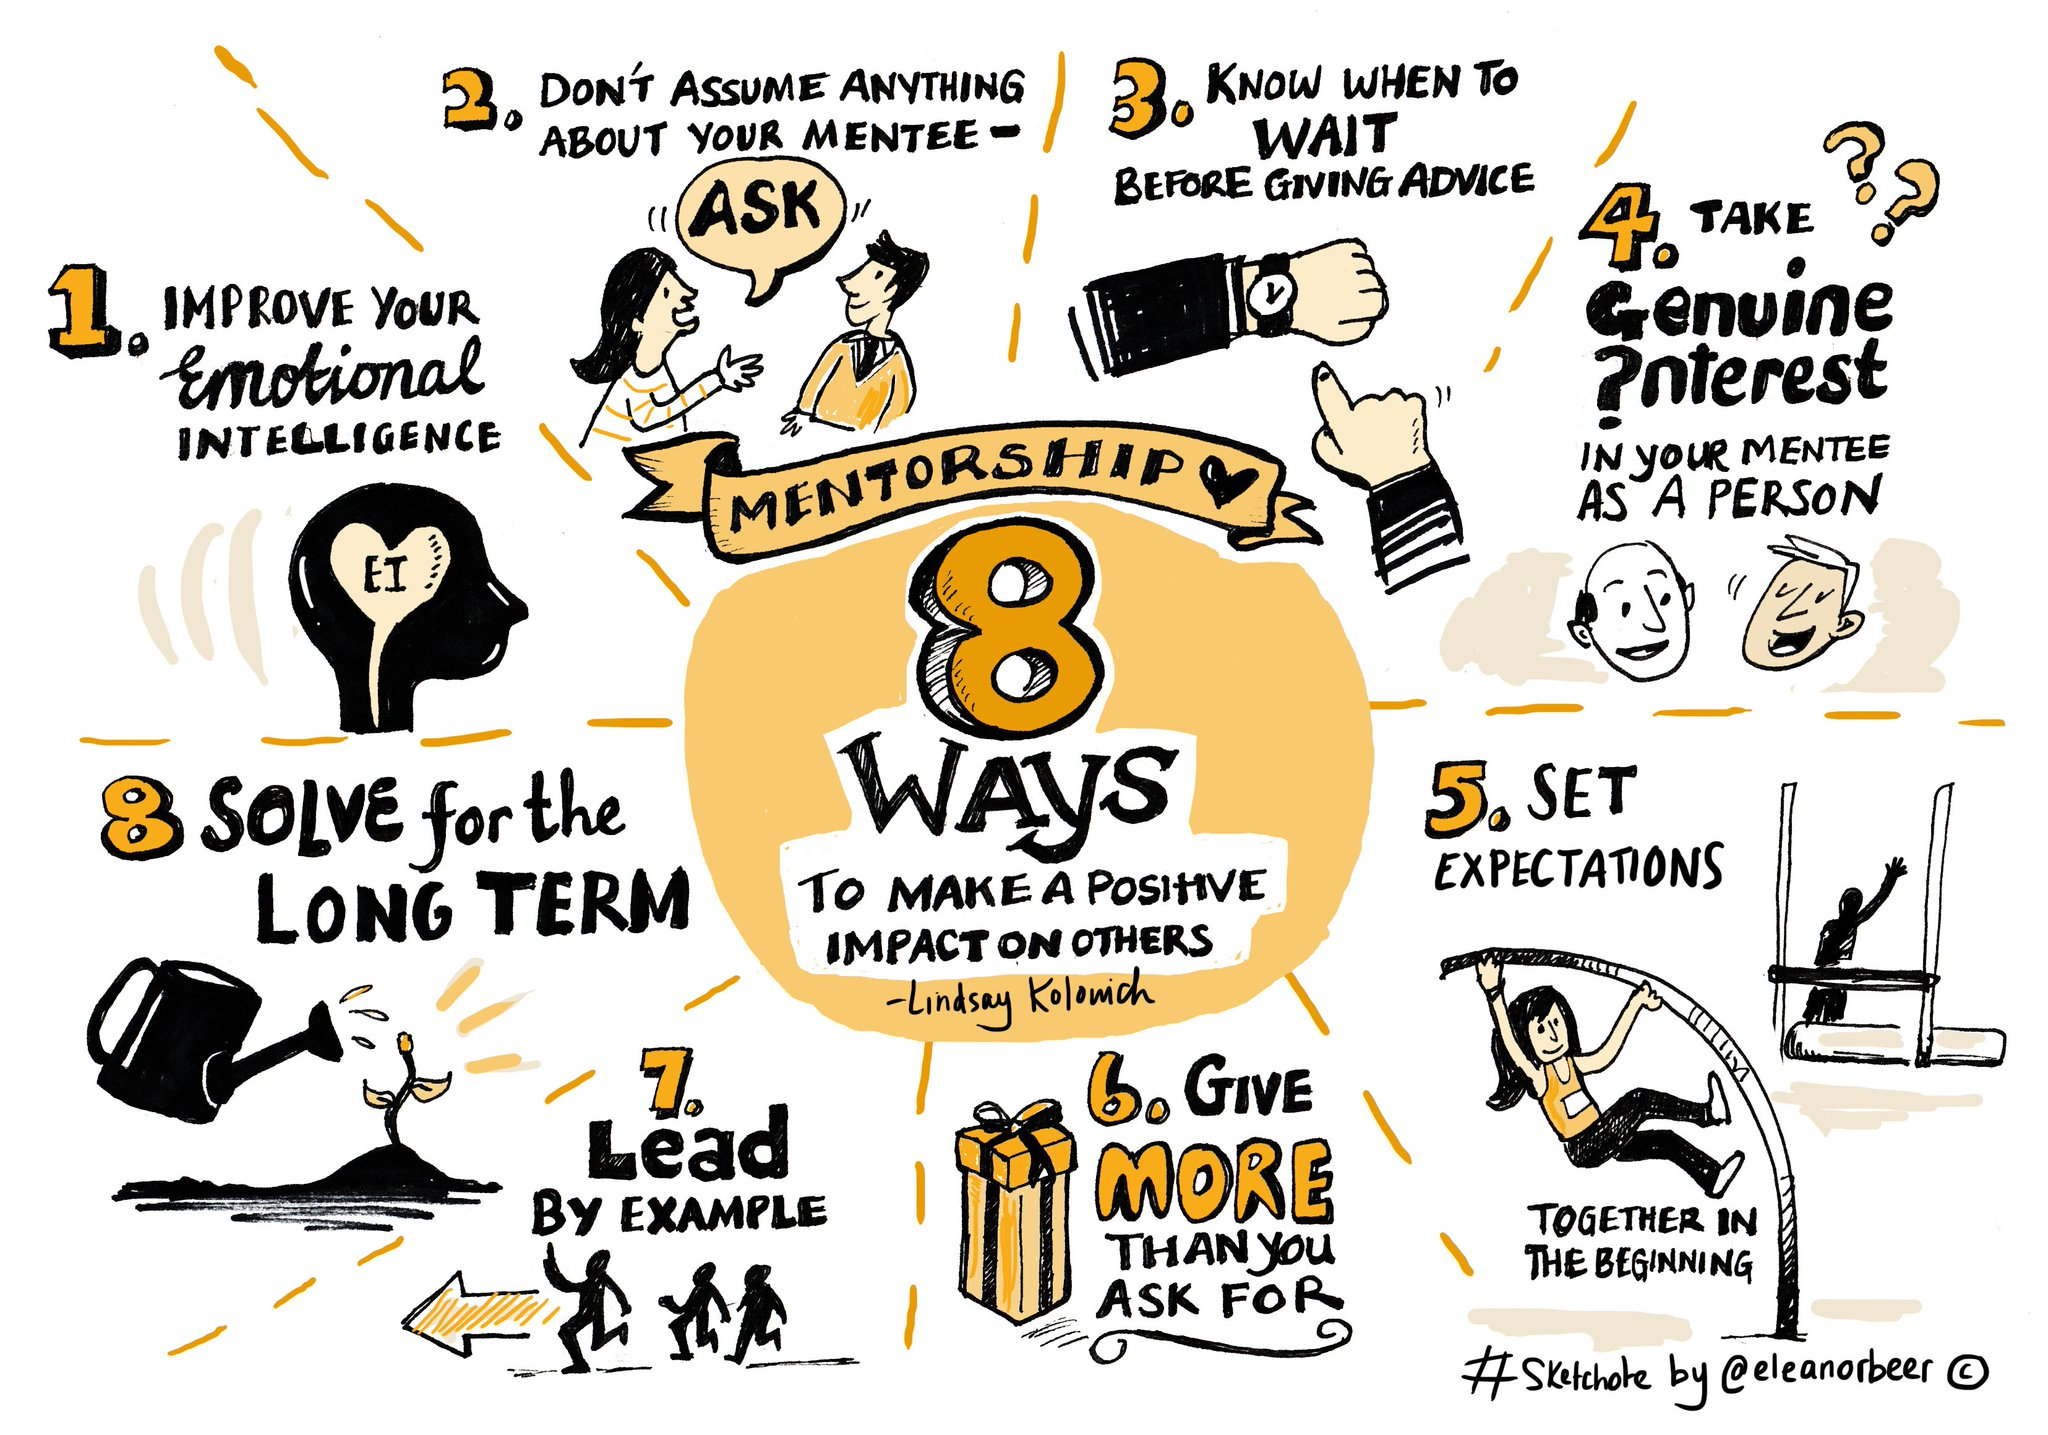 Today is #NationalMentoringDay. Here's 8 ways to make a positive impact on others #sketchnote from @lkolow's tips https://t.co/N3fsOXP8Yb